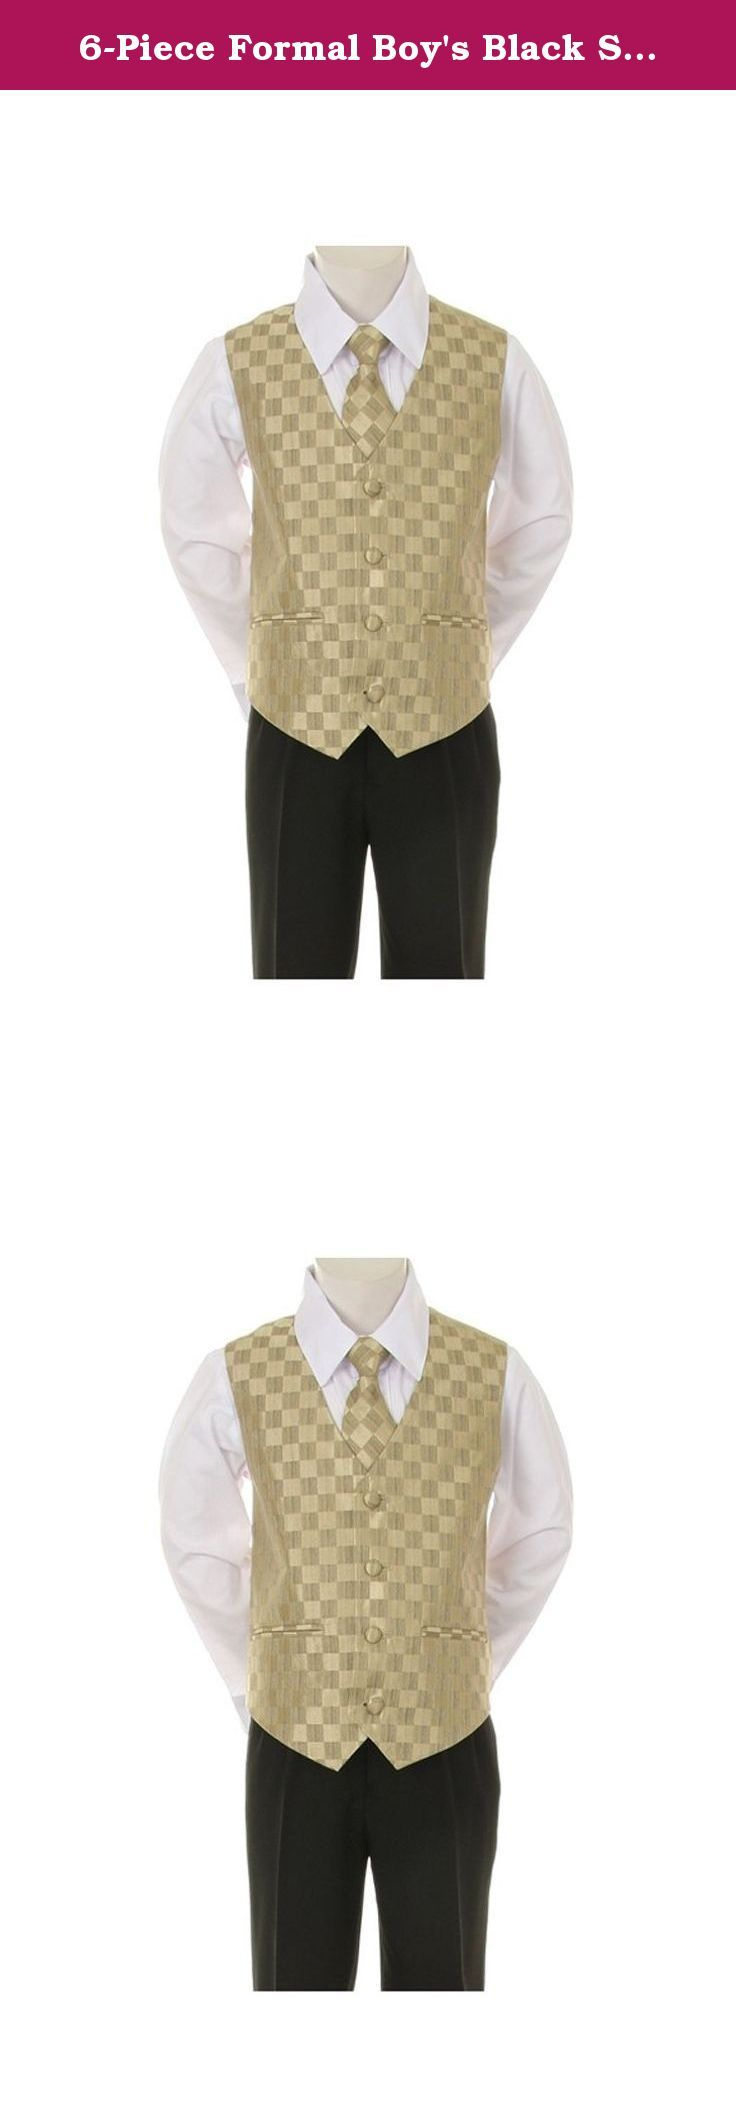 6-Piece Formal Boy's Black Suit Gold Vest Tie - Size 6. 6-Piece Formal Boy's Suit includes Jacket, Pant, Vest, Shirt, Tie, and Handkerchief. 3-Button Jacket with Flat Front Pant with 4-Button Vest with gathered back (3-Button Vest Infant sizes). Black suit. Matching Vest Checkered Color Zipper Tie. White Button Down Boys Dress Shirt with Pointed Collar and Barrel Cuffs with Adjustable Cuff Width. Suit: 100 % Polyester Dress Shirt: 65% Polyester/35% Cotton PLEASE SEE SIZE CHART BELOW FOR…